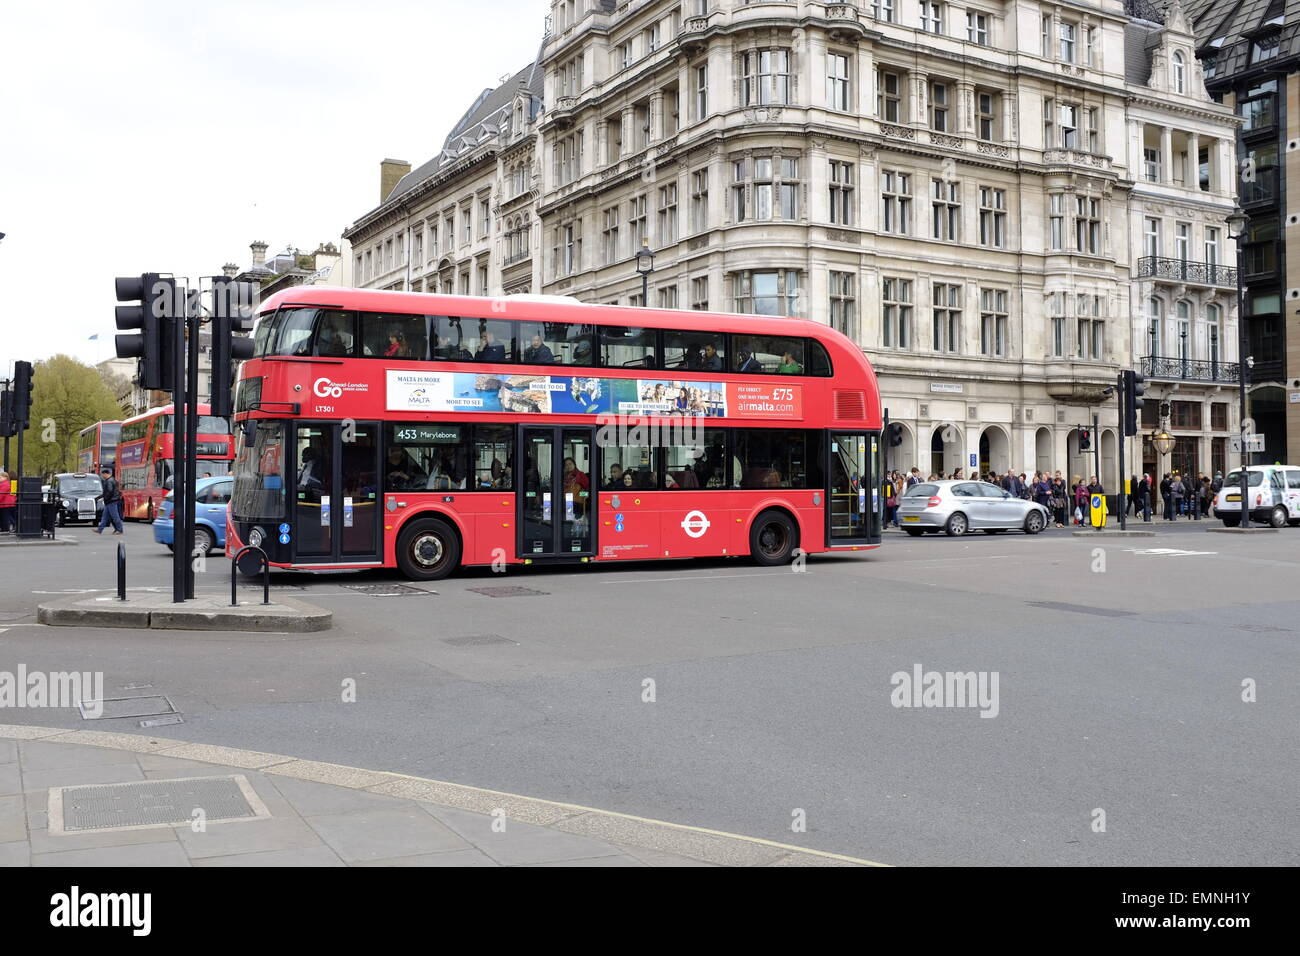 New Routemaster Bus for London in Westminster - Stock Image